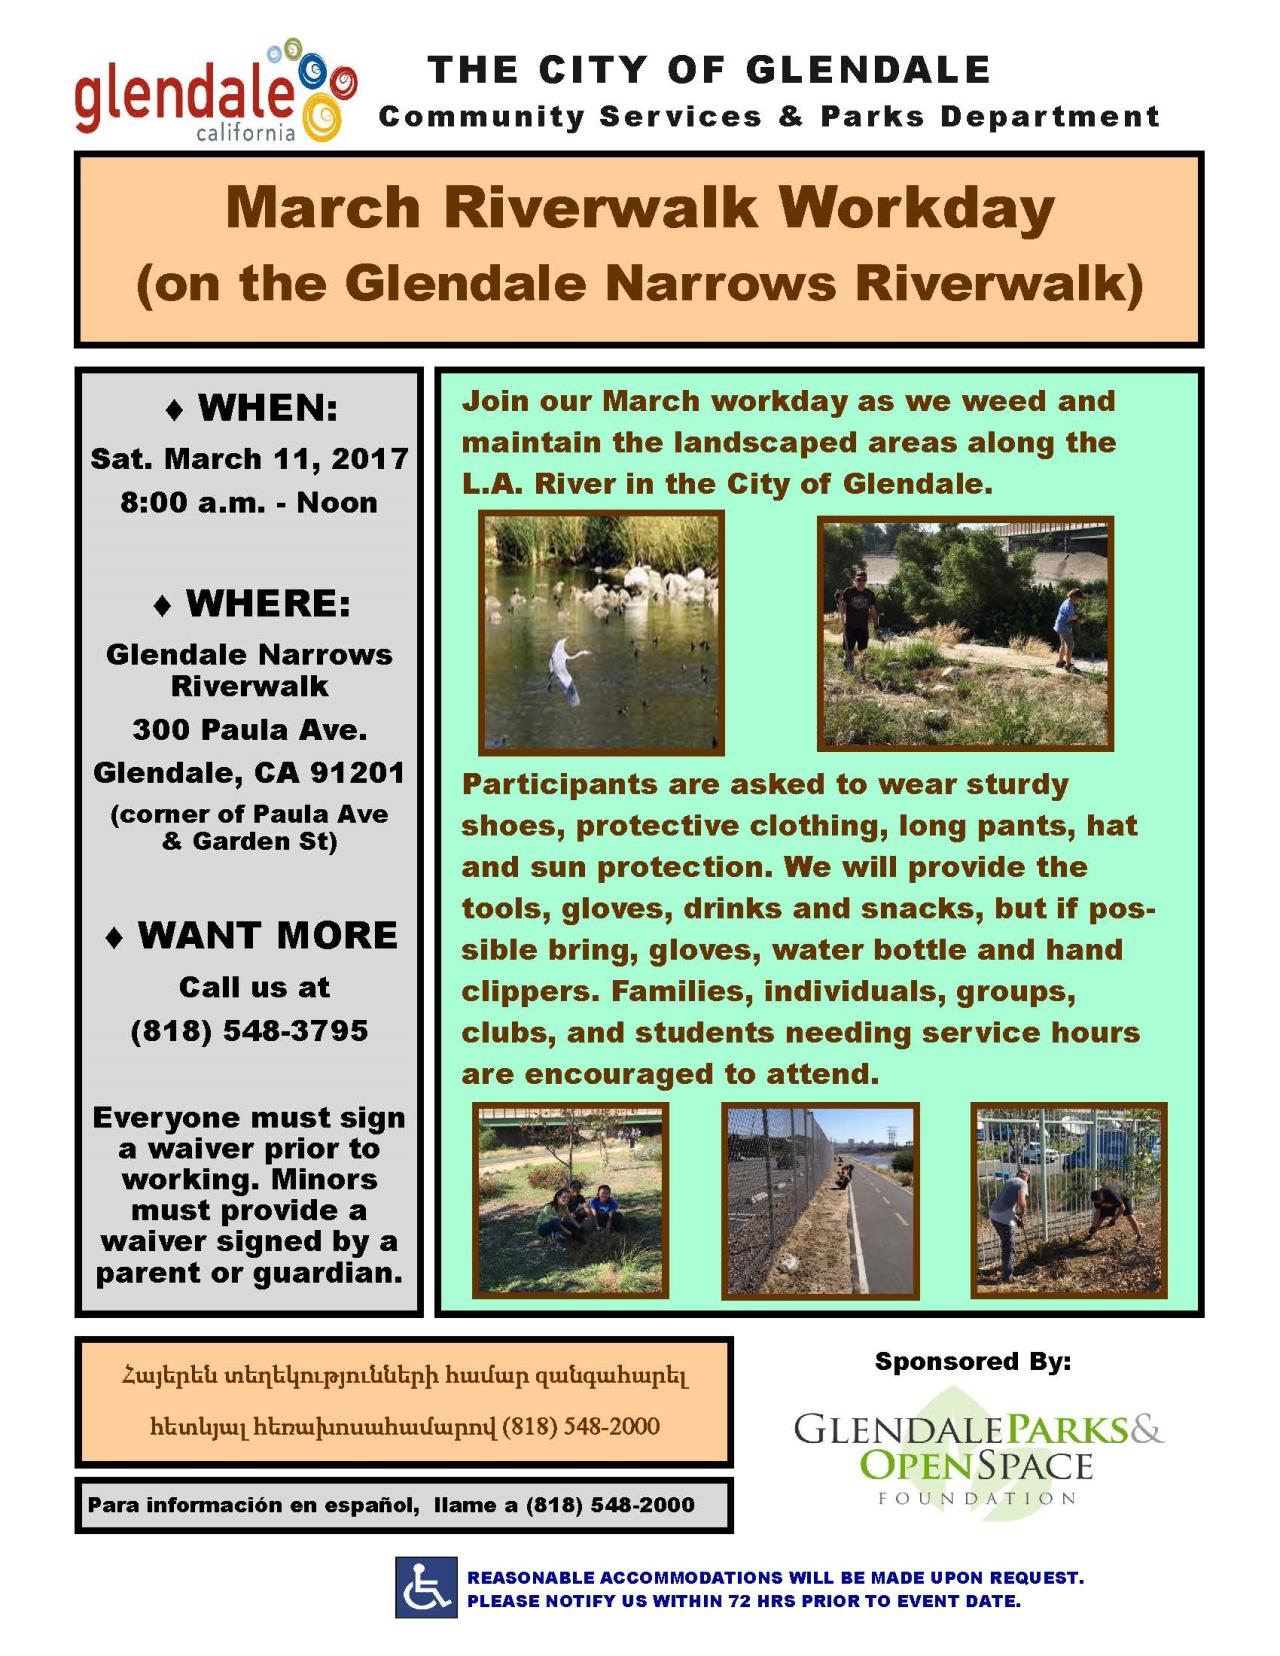 March2017 Riverwalk Workday